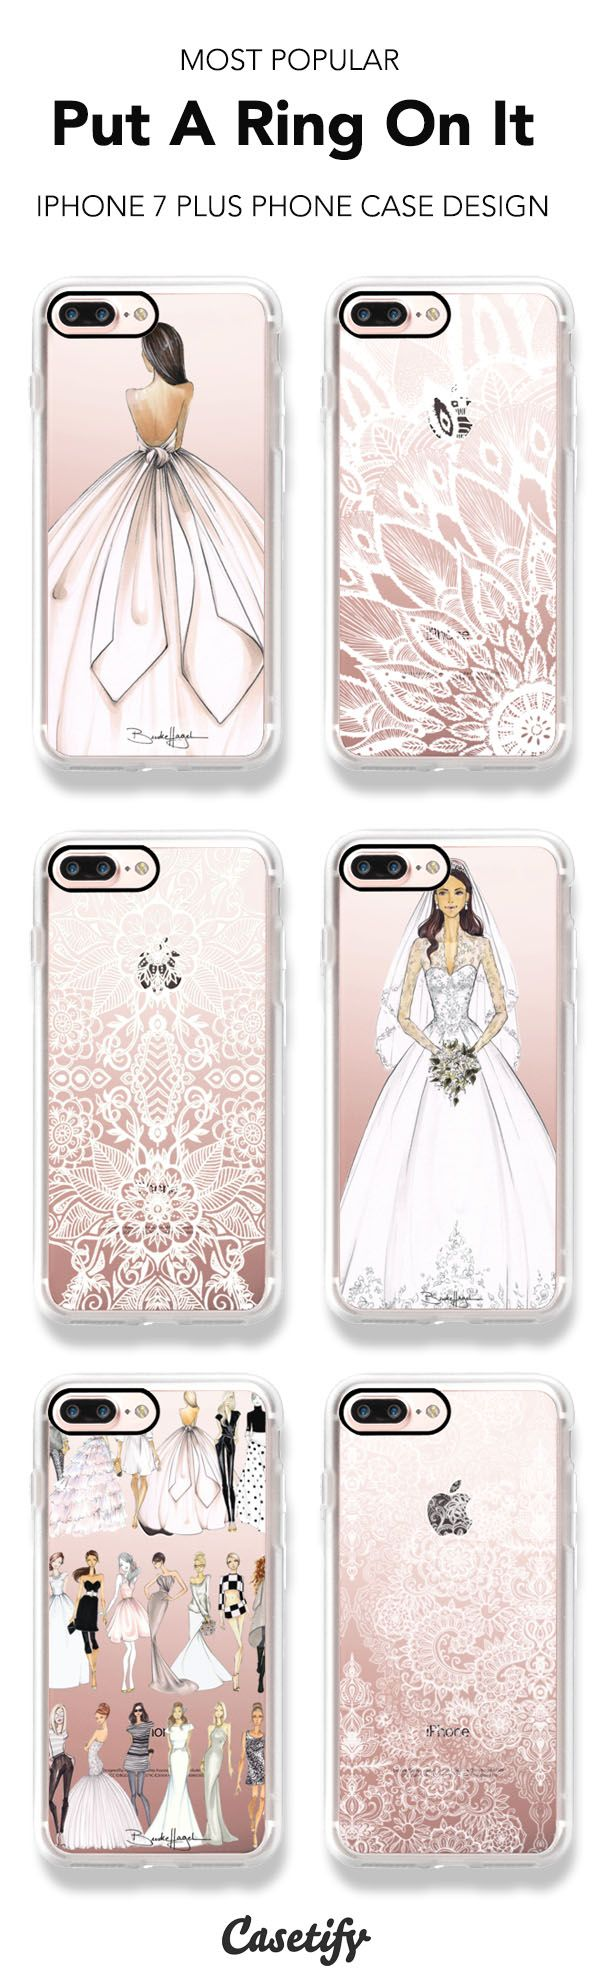 Most Popular Bridal iPhone 7 and iPhone 7 Plus cases. Shop them all here >   https://www.casetify.com/artworks/5QyP92tWGm